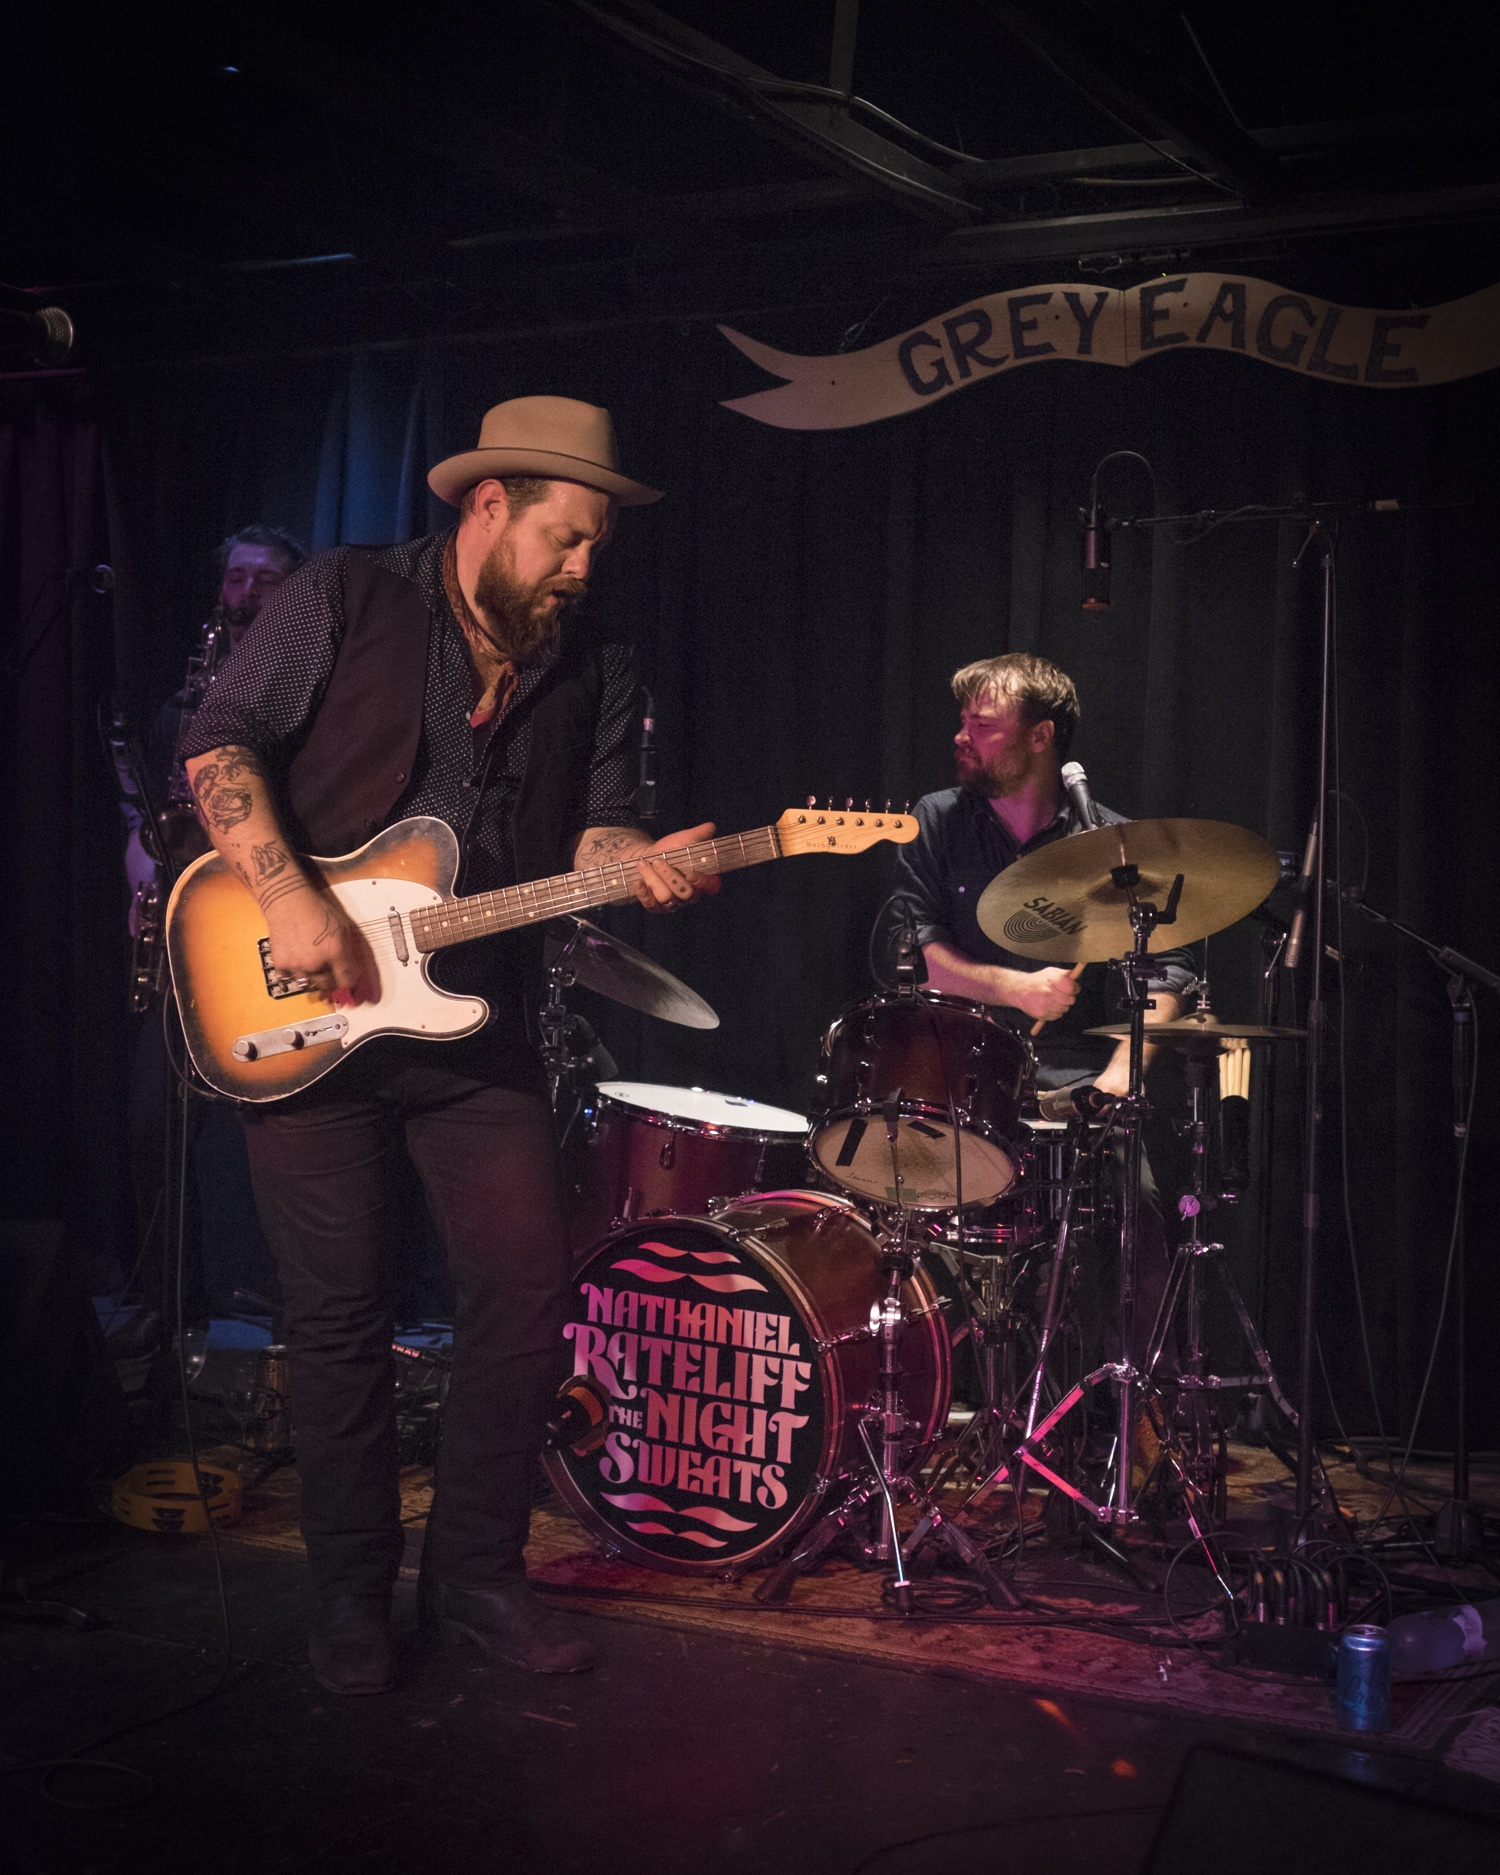 Nathaniel Rateliff & The Night Sweats doing what they do best - Rockin'